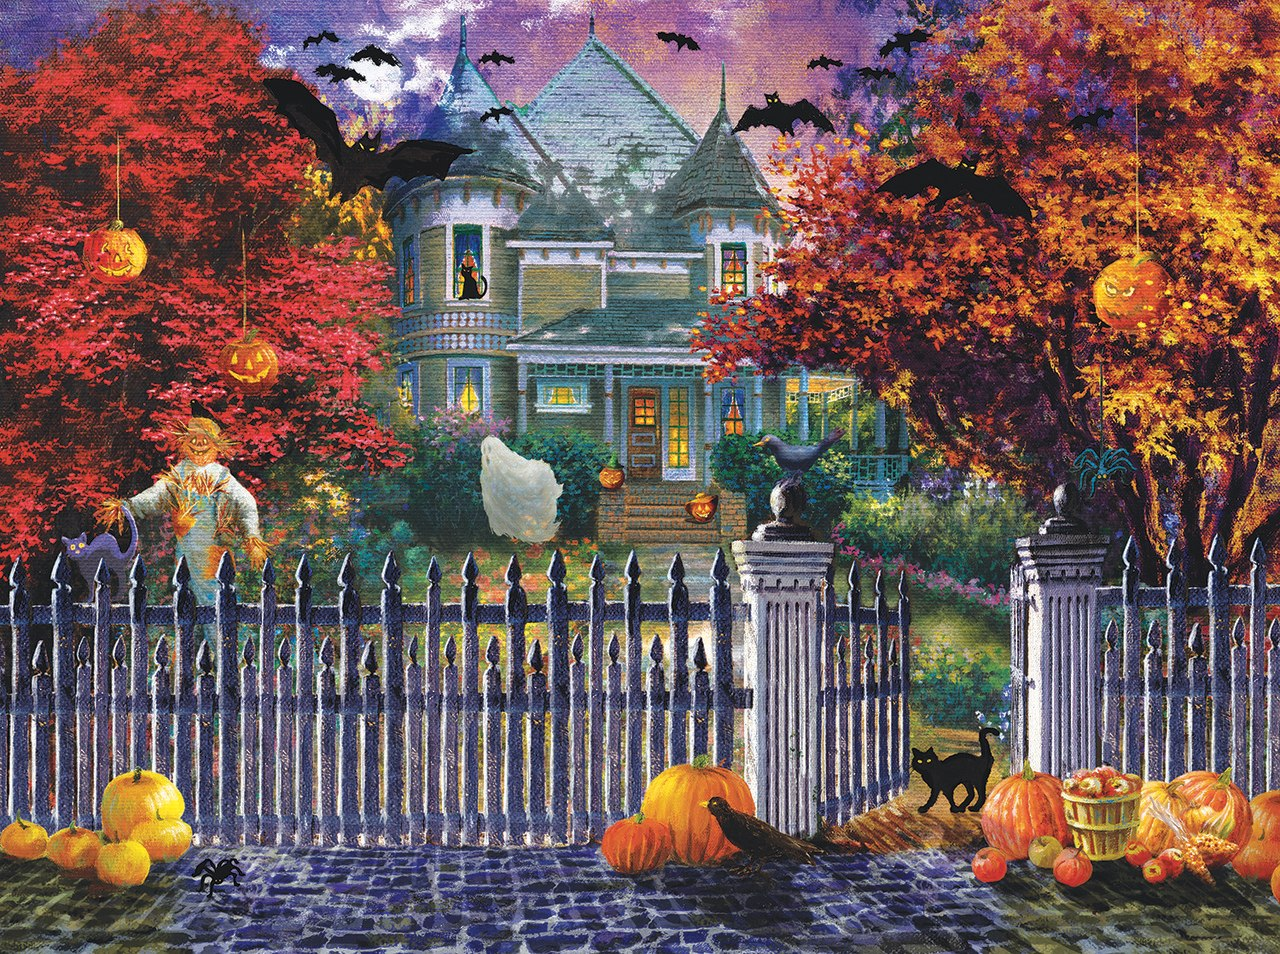 Halloween House - 1000pc Jigsaw Puzzle by Sunsout  			  					NEW